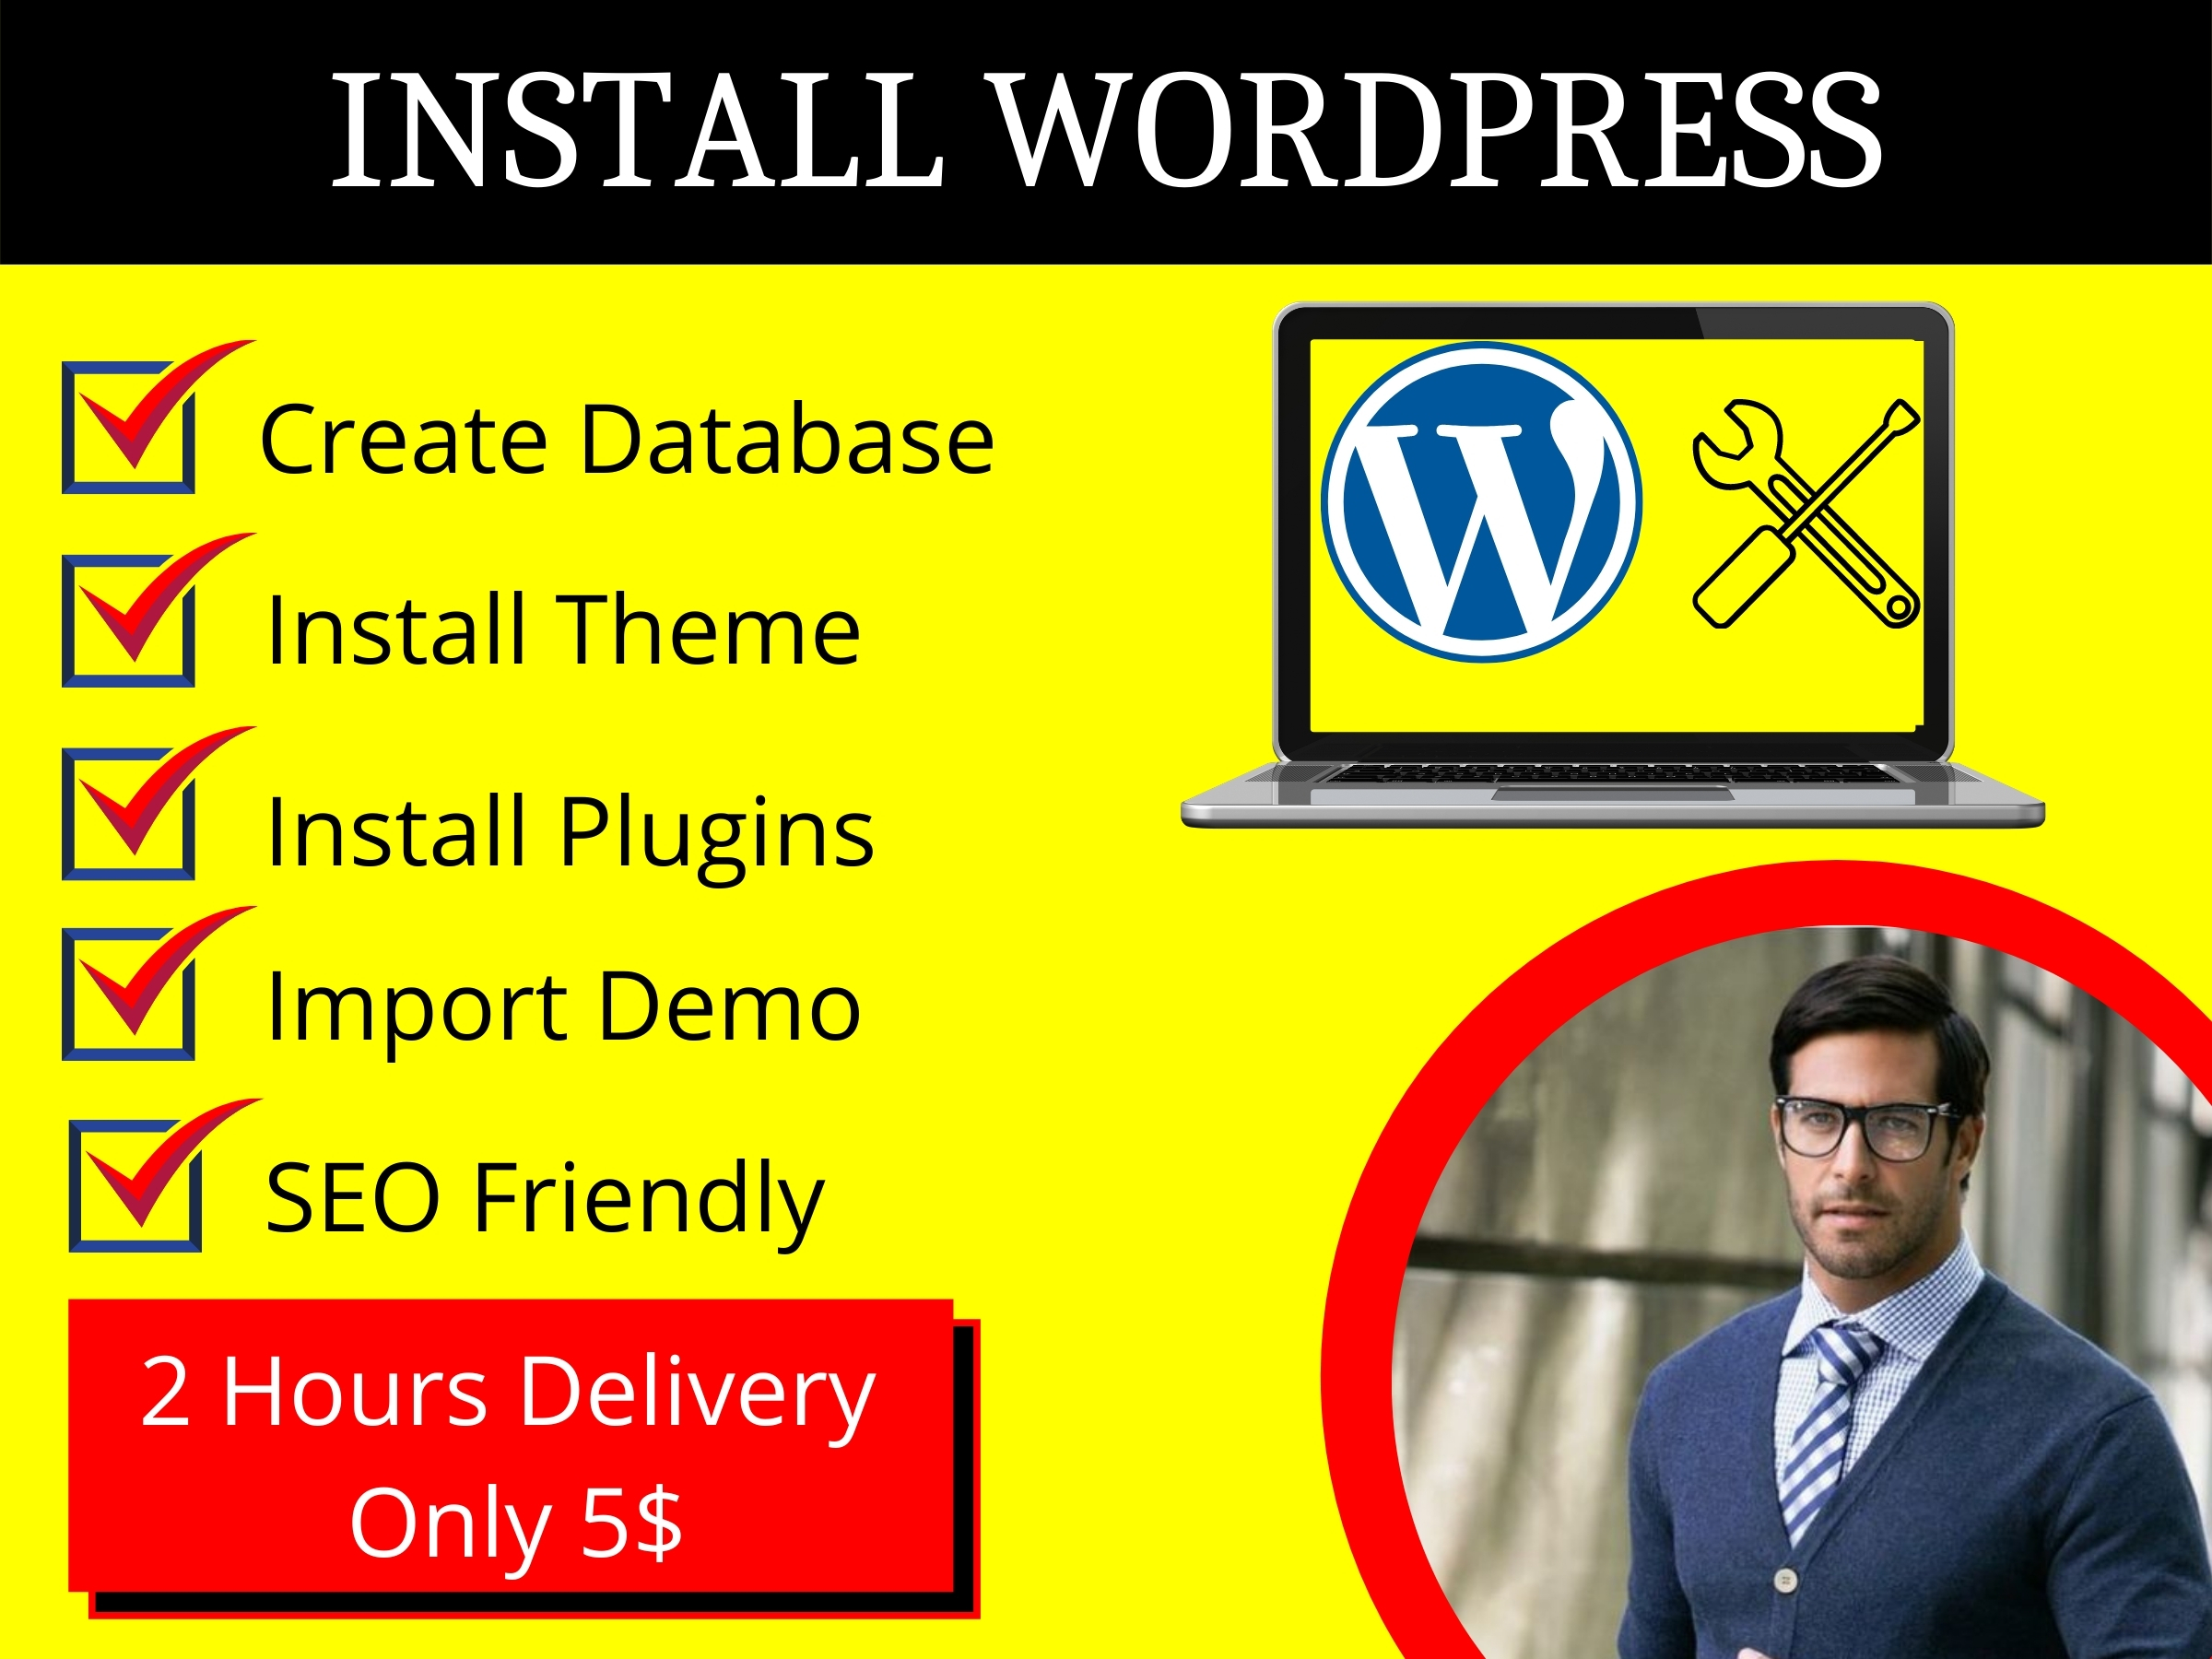 I will install WordPress,  setup theme,  plugin,  demo import,  and customization.